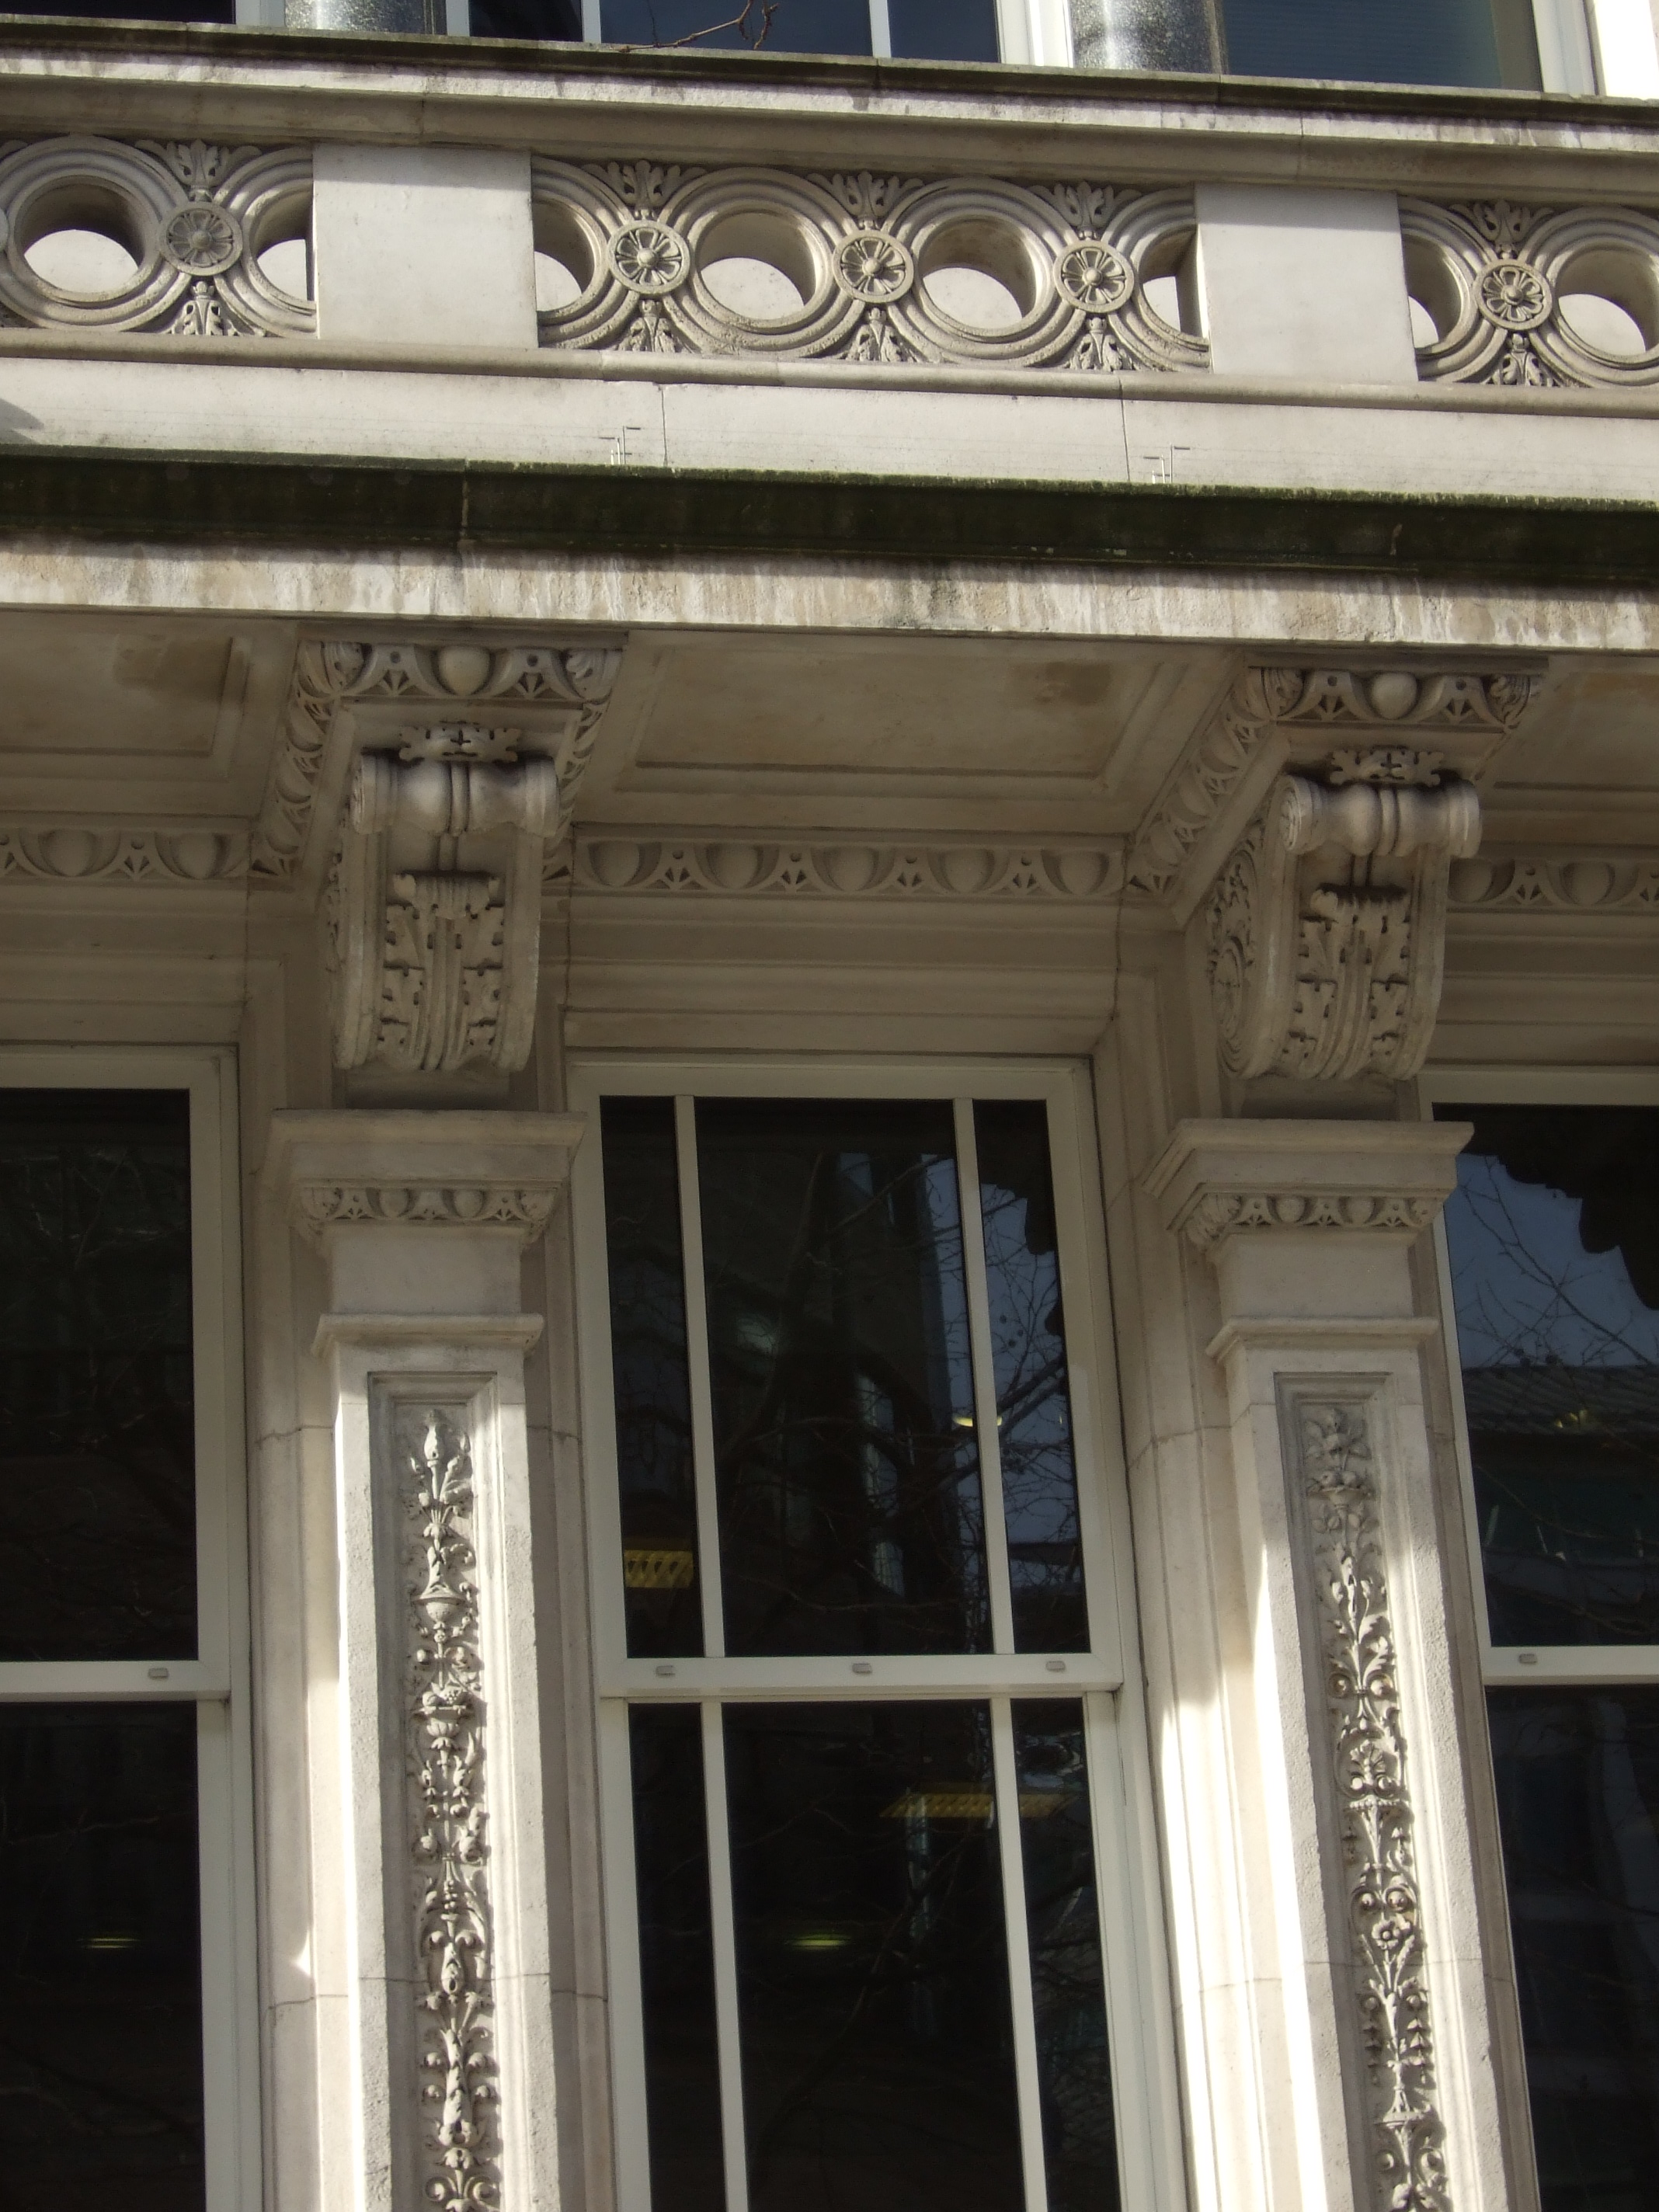 Detail of mullions with superimposed colonnette, margent and corbel